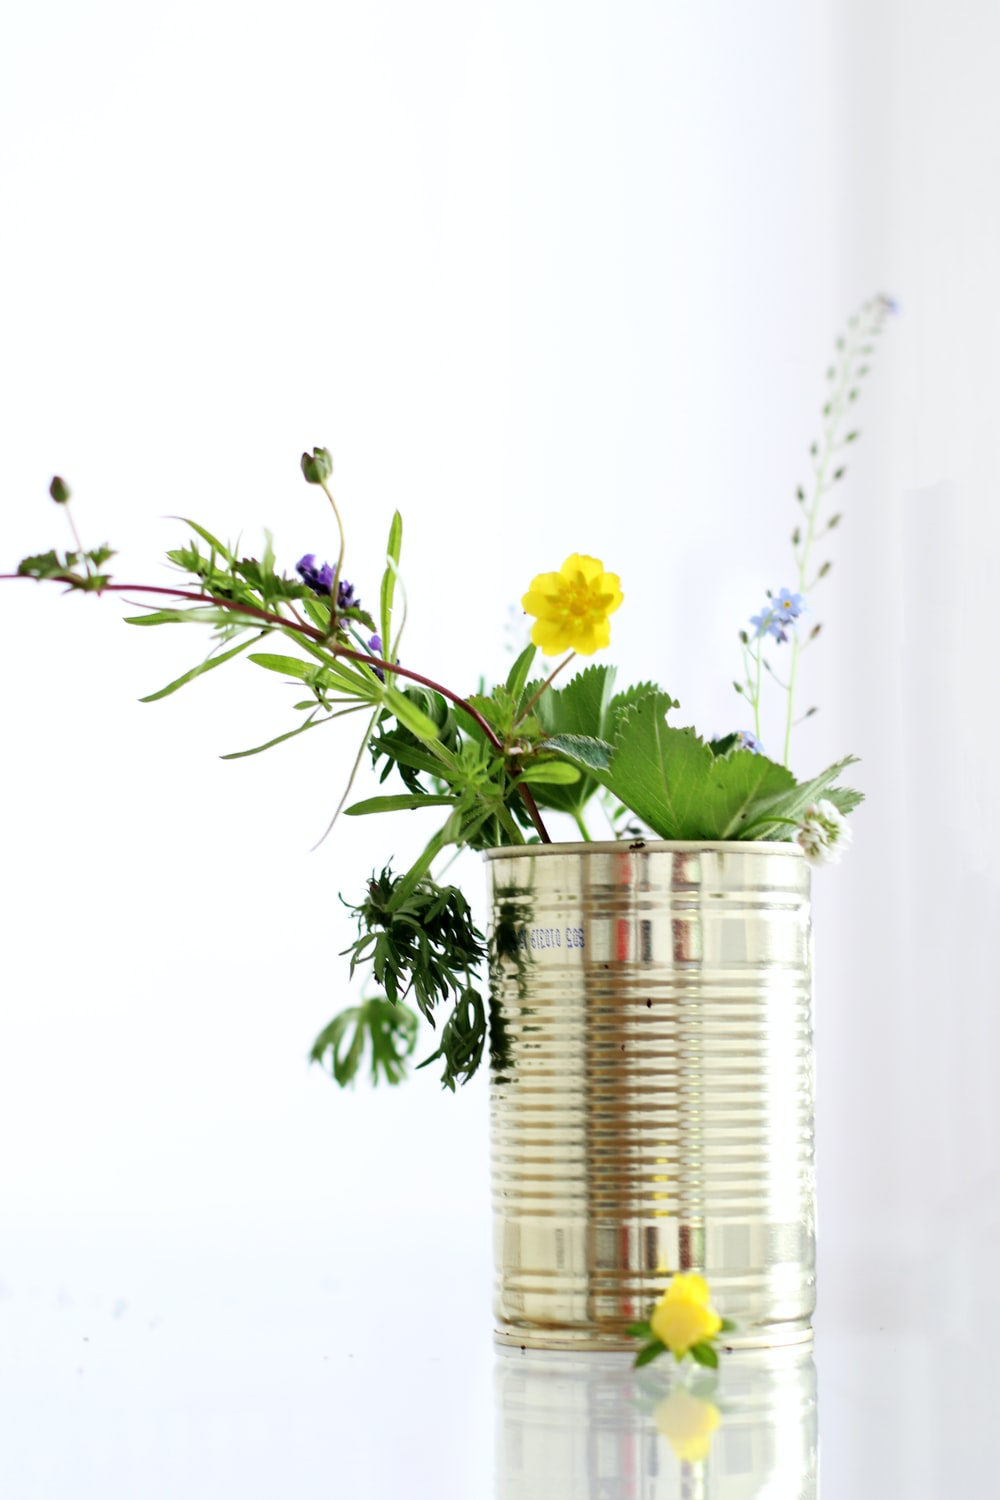 yellow petaled flower in the stainless steel can